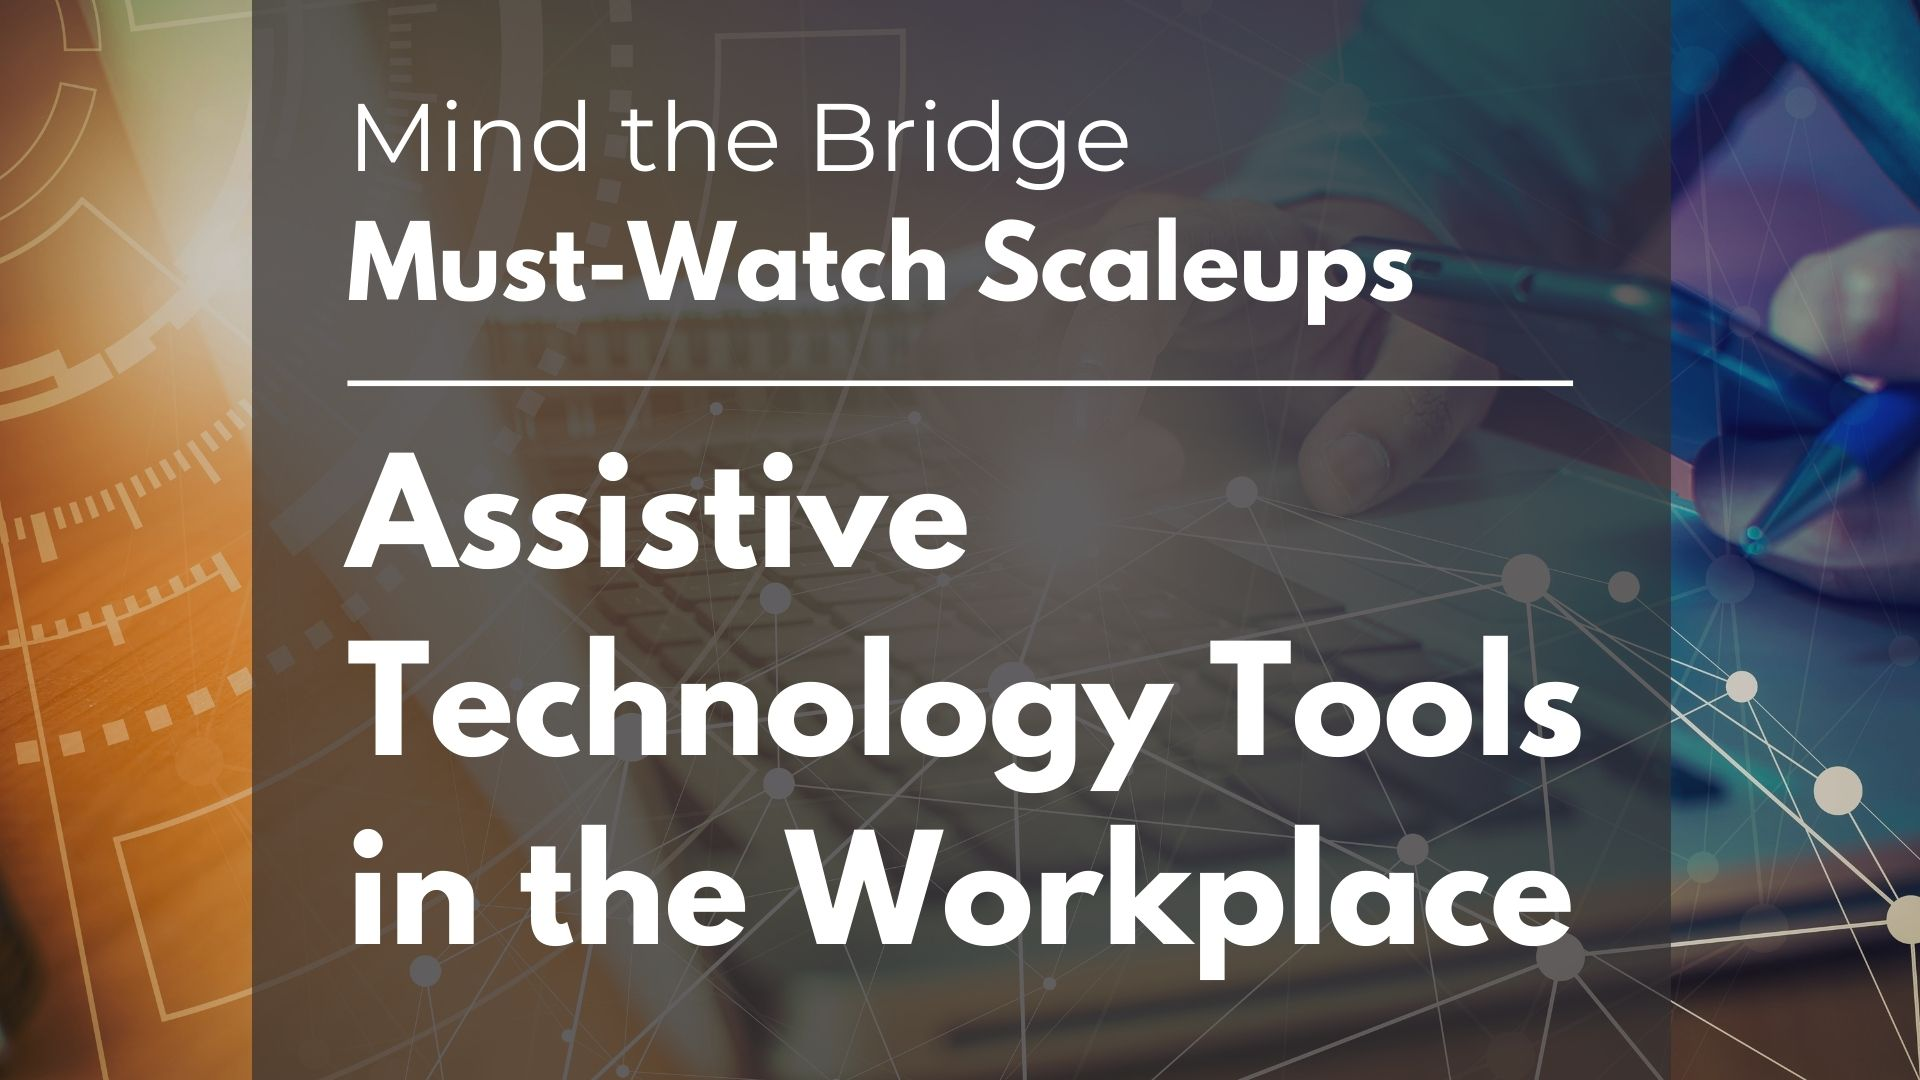 Must-Watch Scaleup list-Assistive Technology Tools in the Workplace